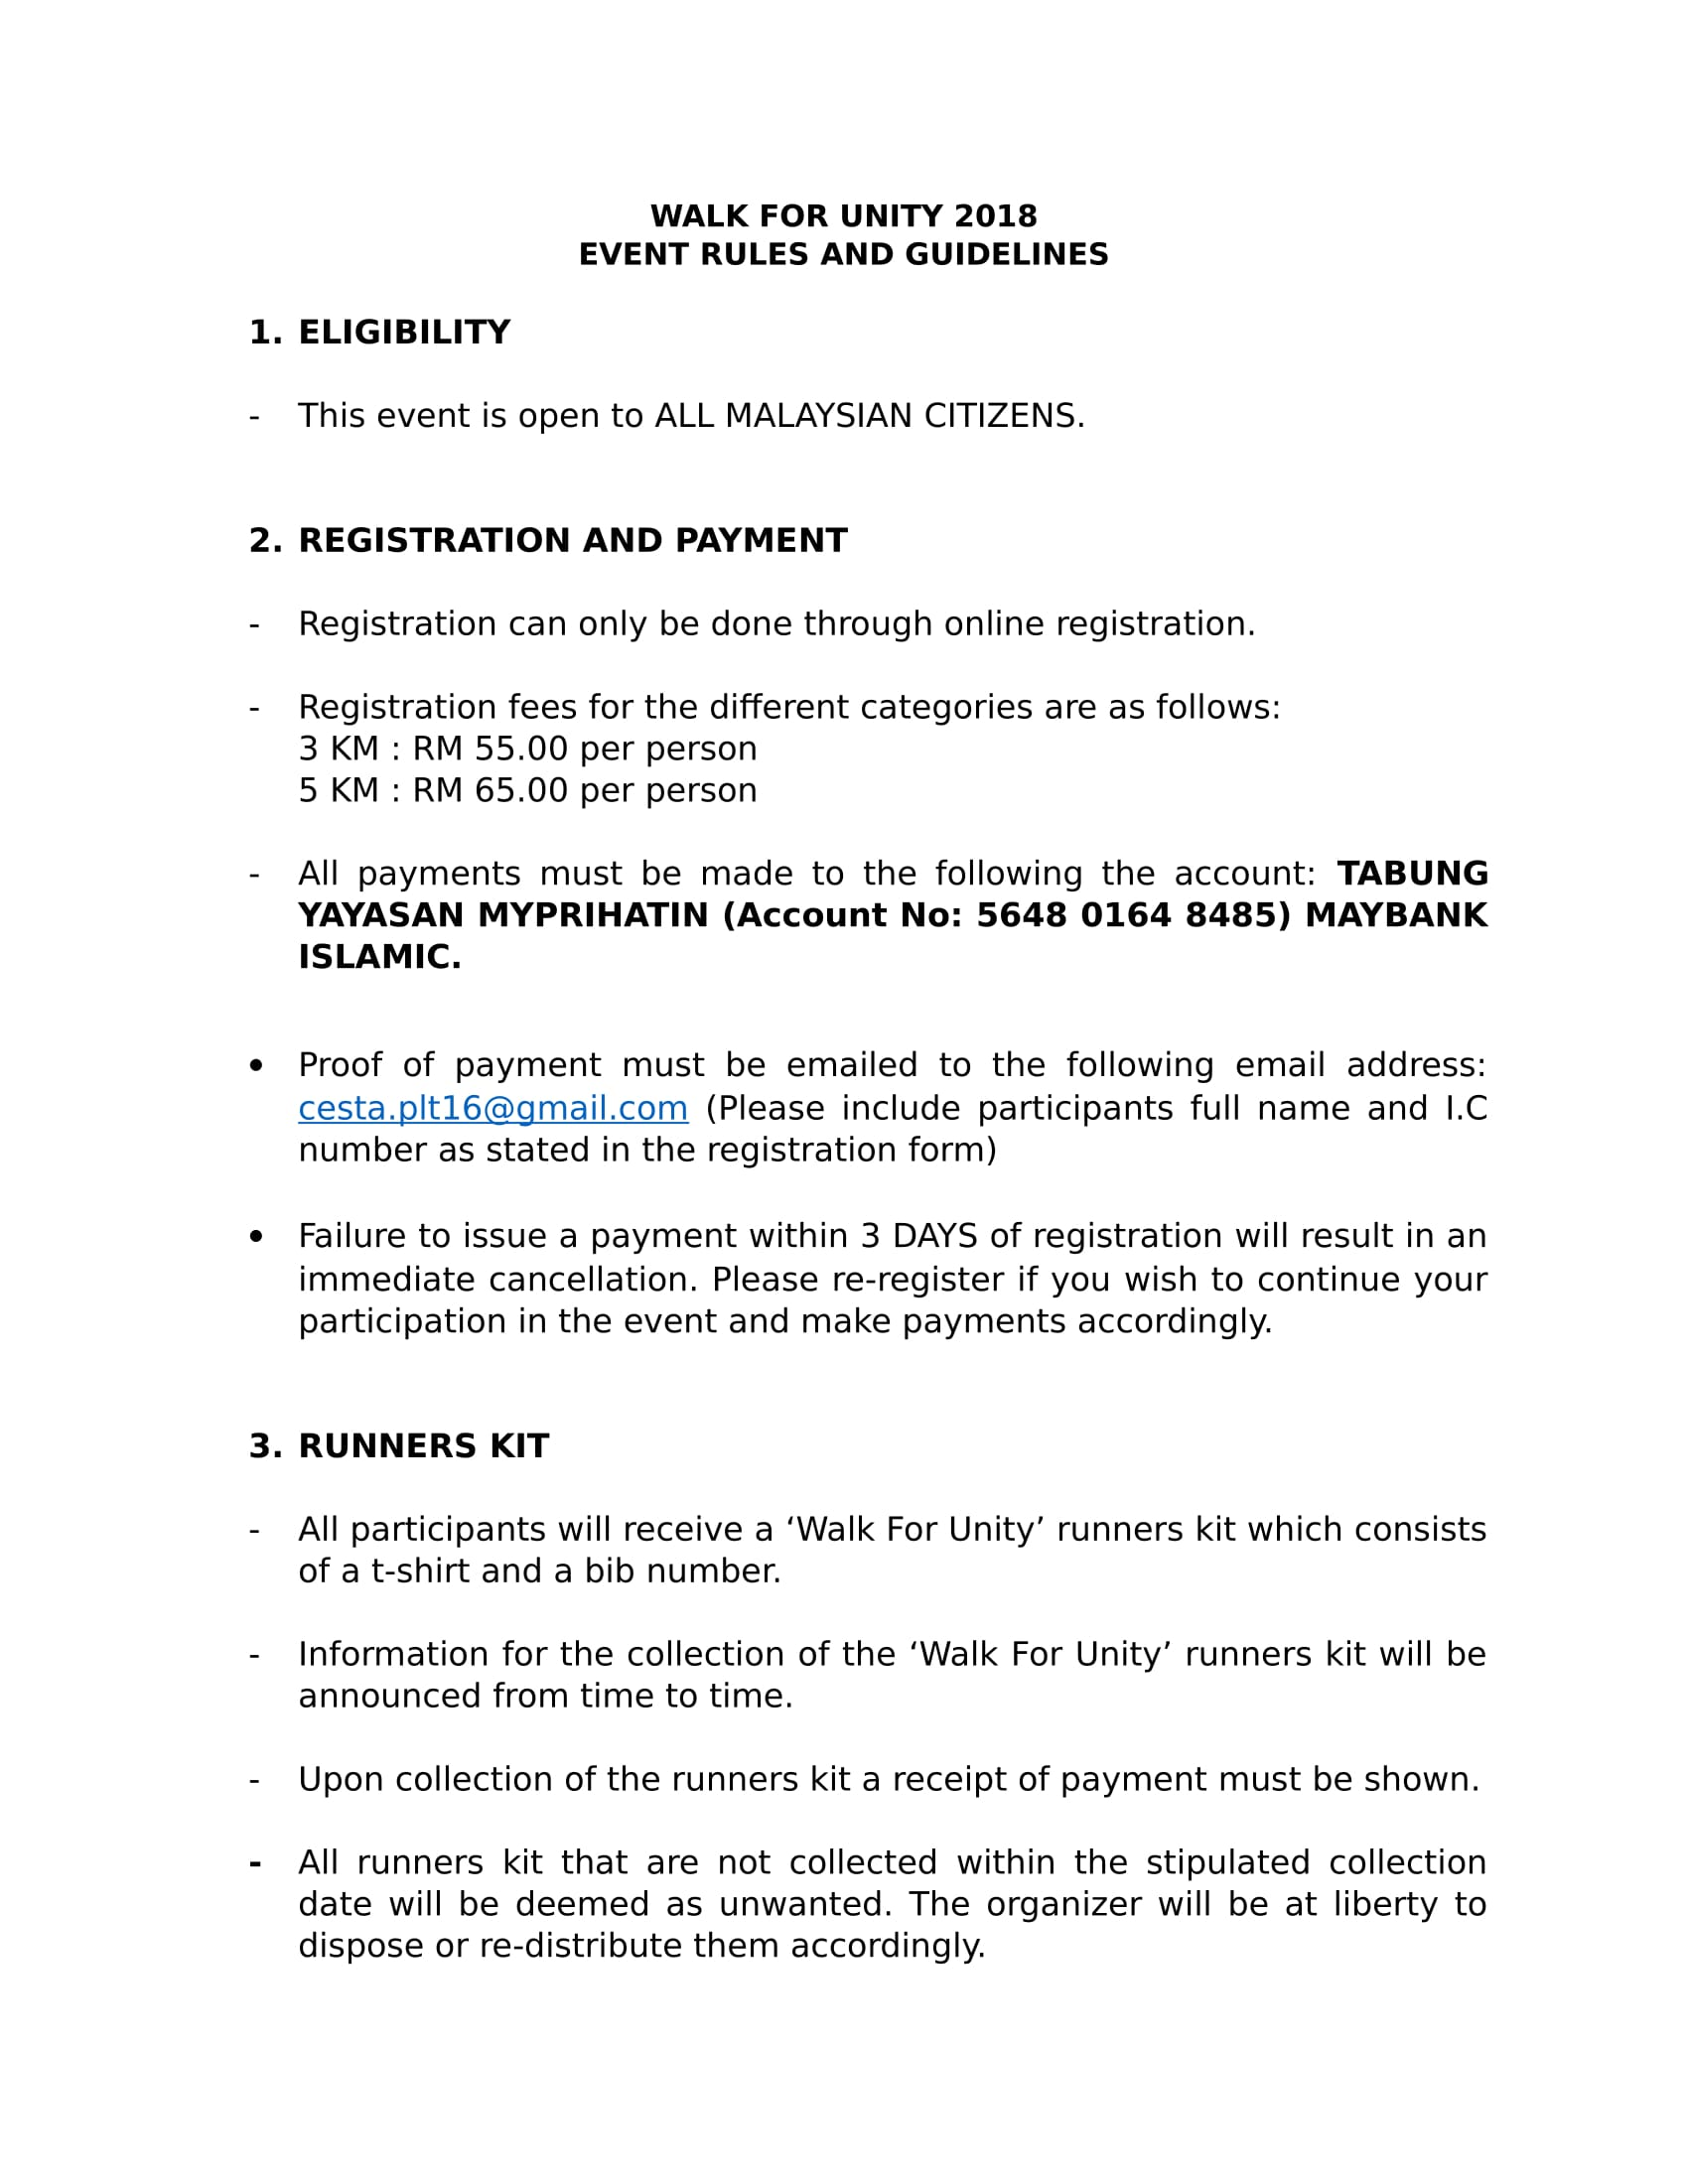 *Please take note in No.2; registration fees have been changed.